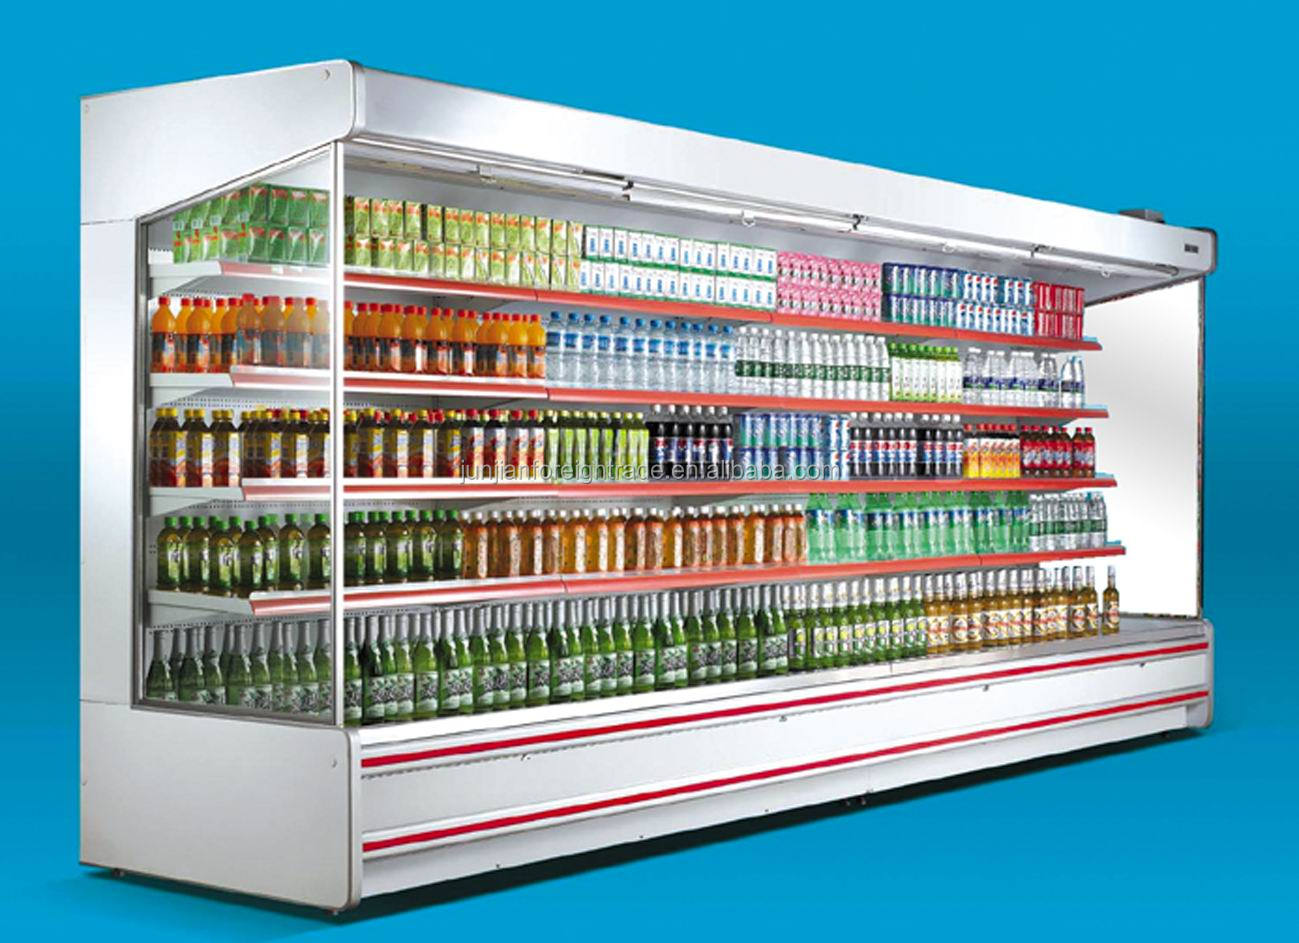 Hg 20f Vertical Supermarket Open Showcase Refrigerator